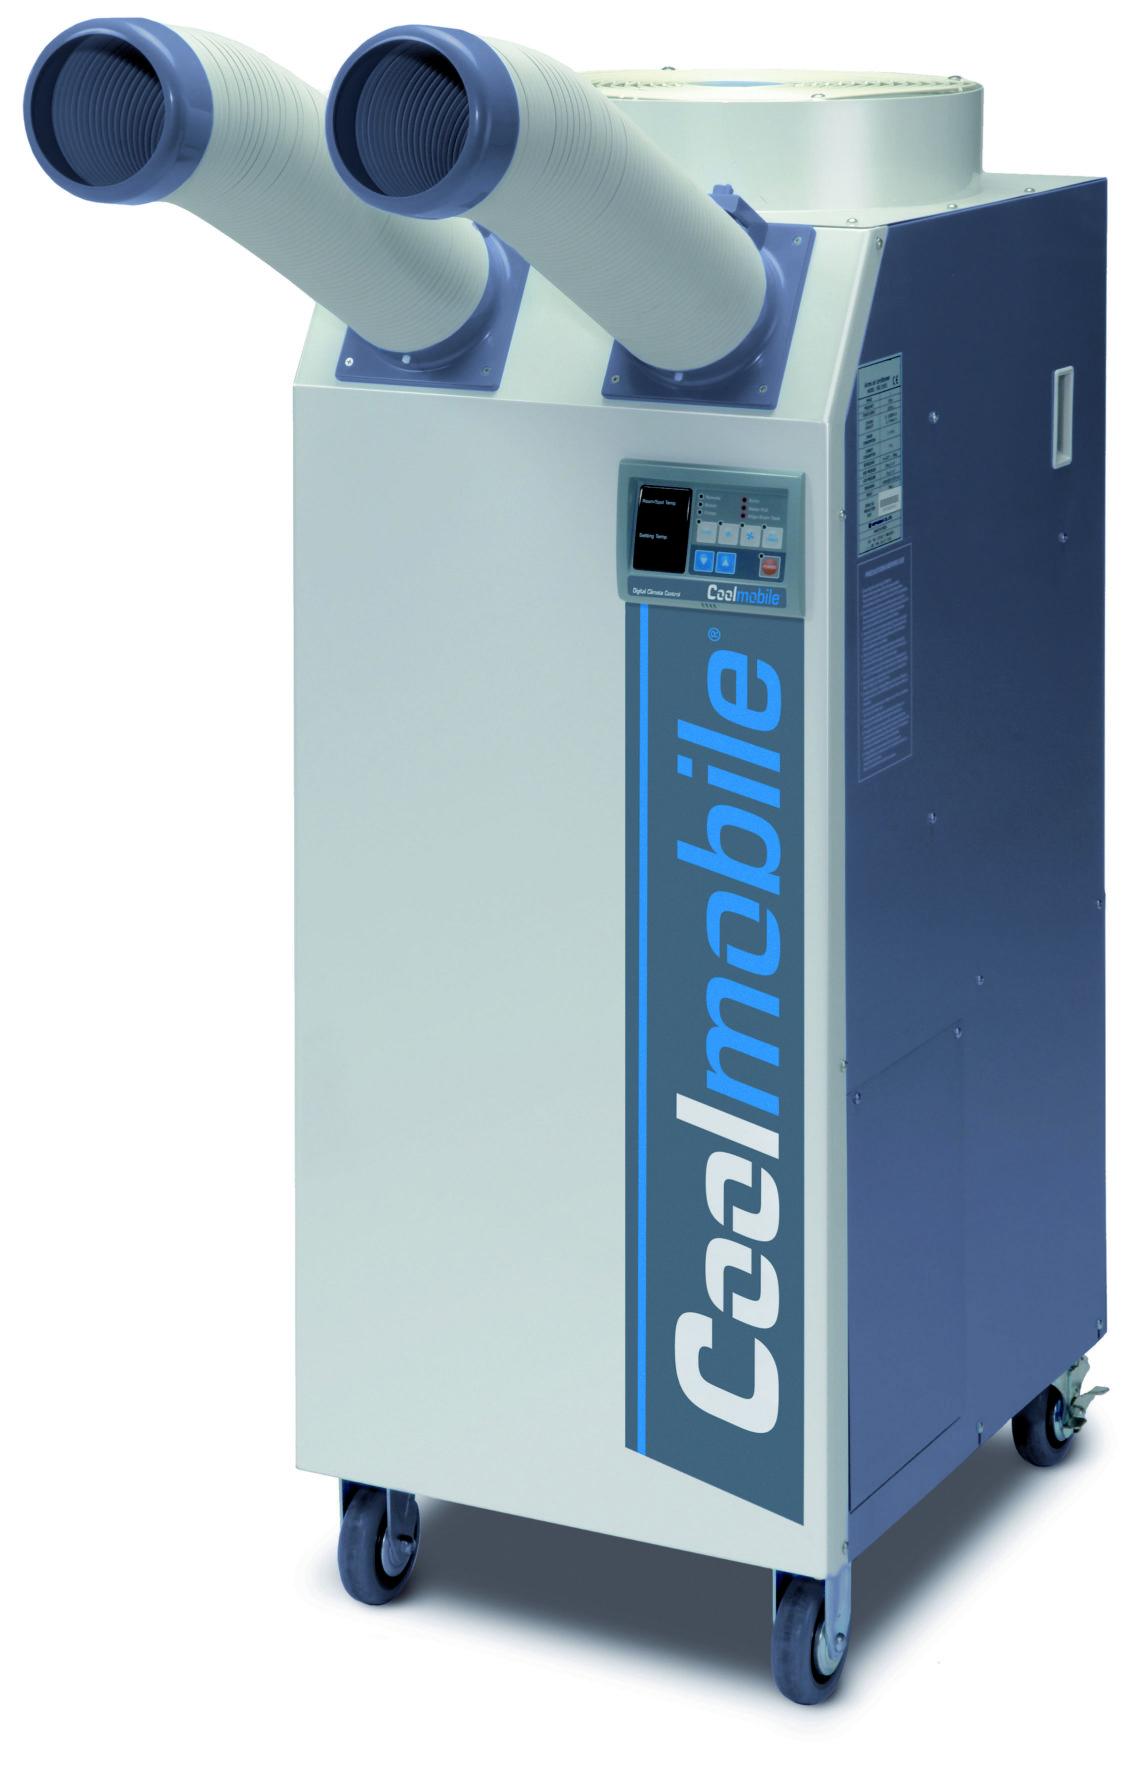 HSC2500 Air Conditioner CAS Hire & Sales Cooler Air Services Air  #3A6391